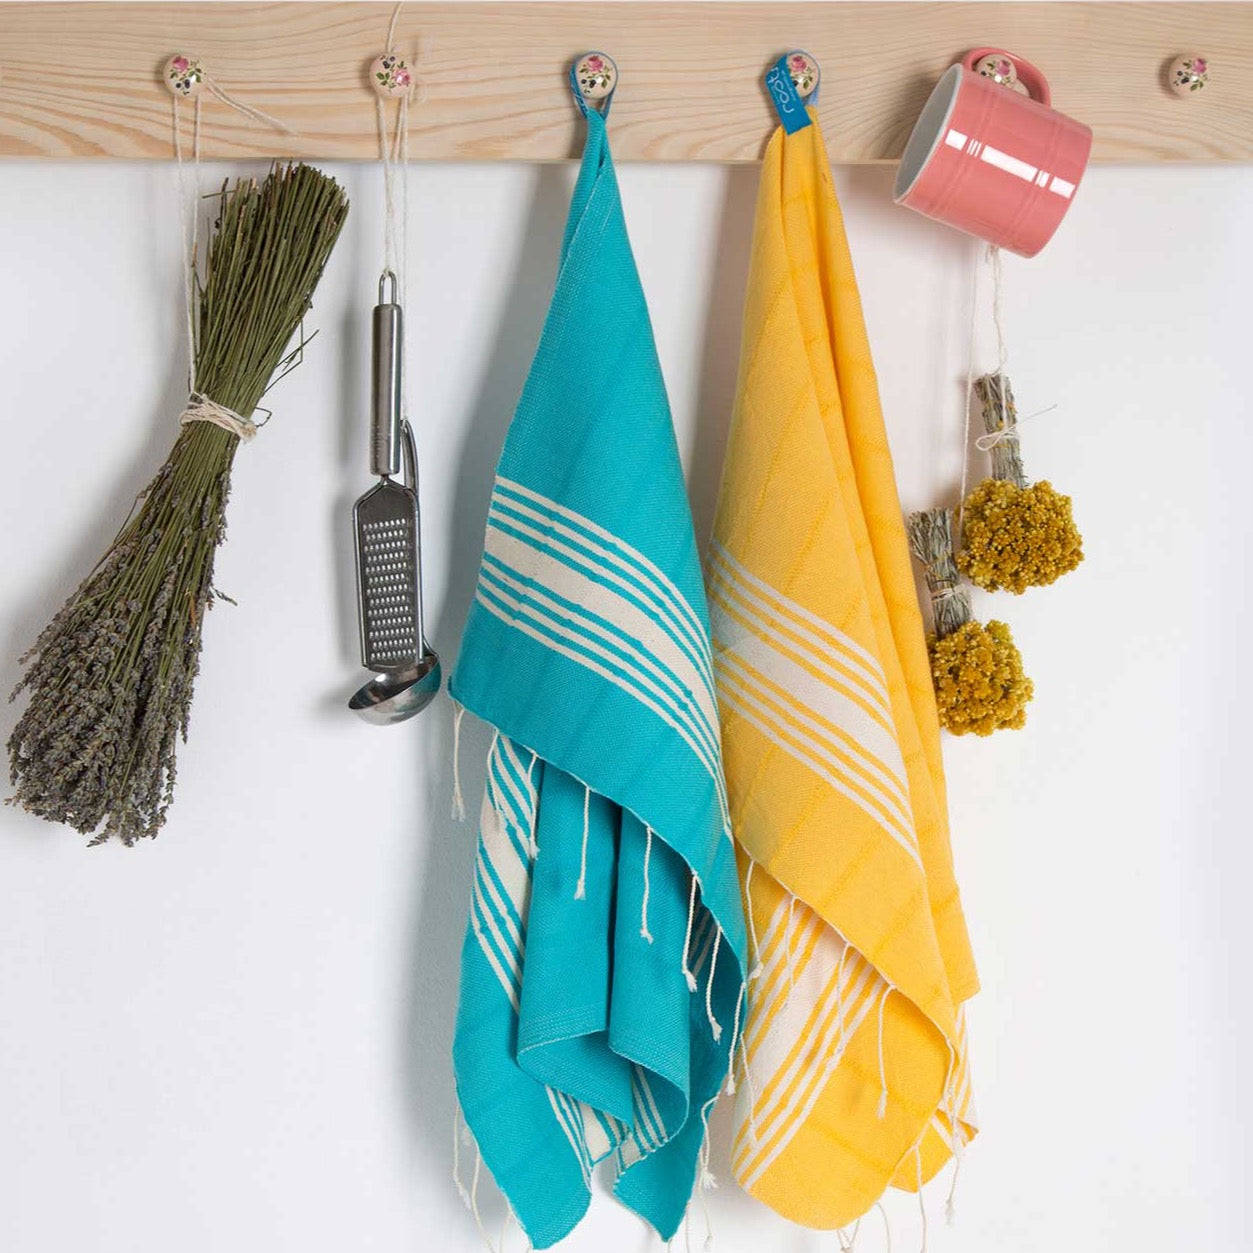 FRIENDS - Cotton Kitchen Tea Towels - livingroots uk